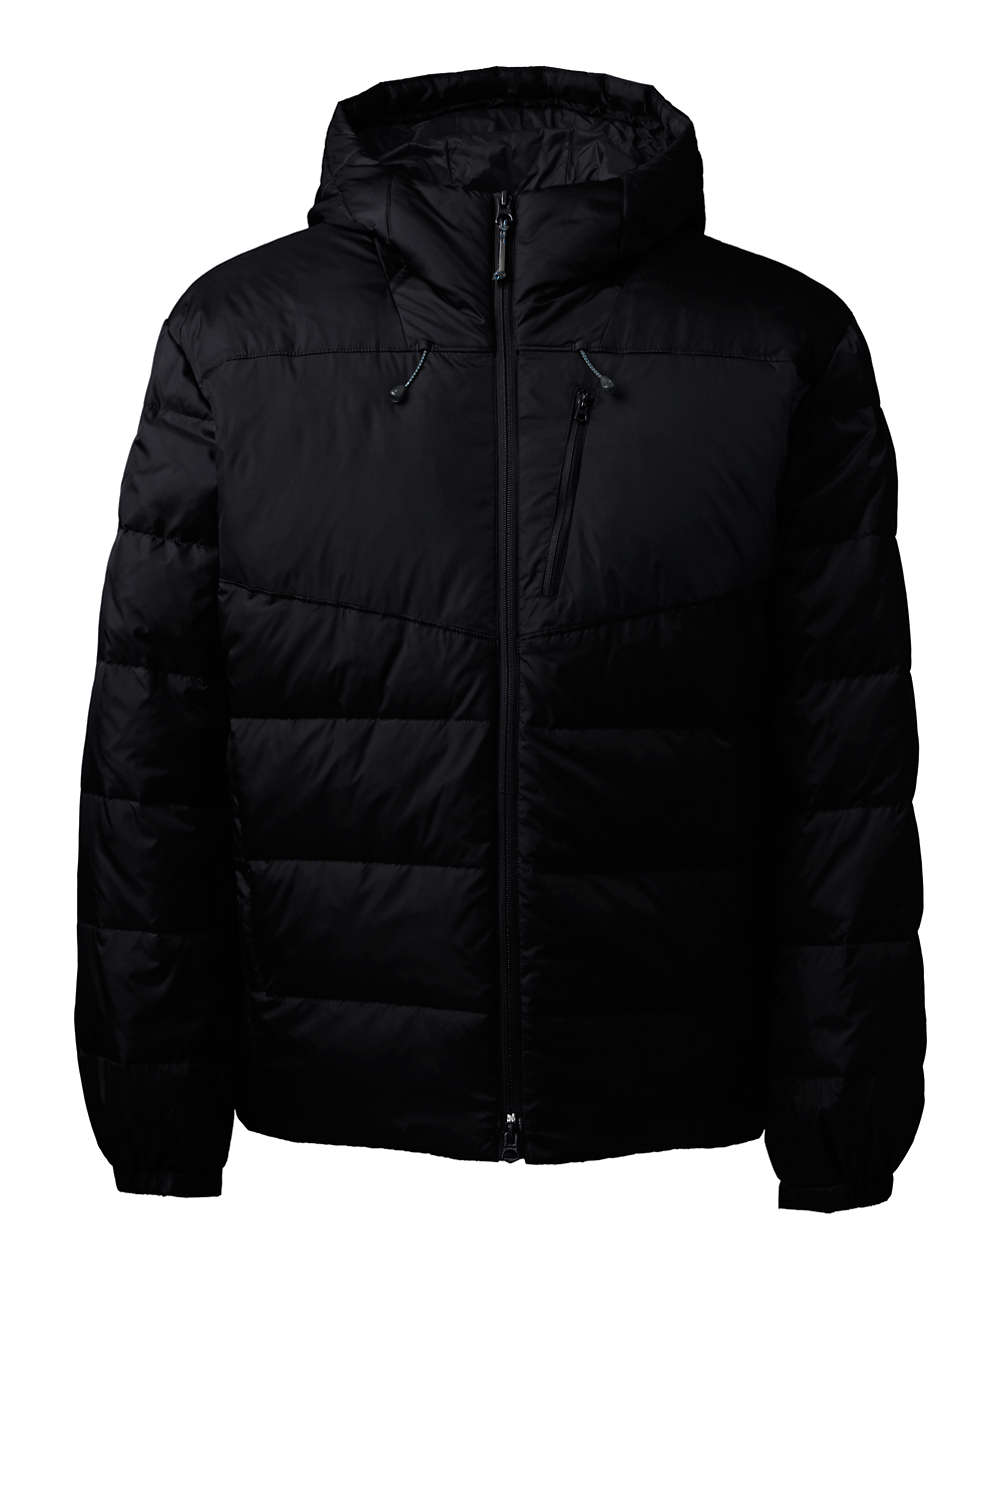 083ad7220 Men's Expedition Winter Down Puffer Jacket from Lands' End